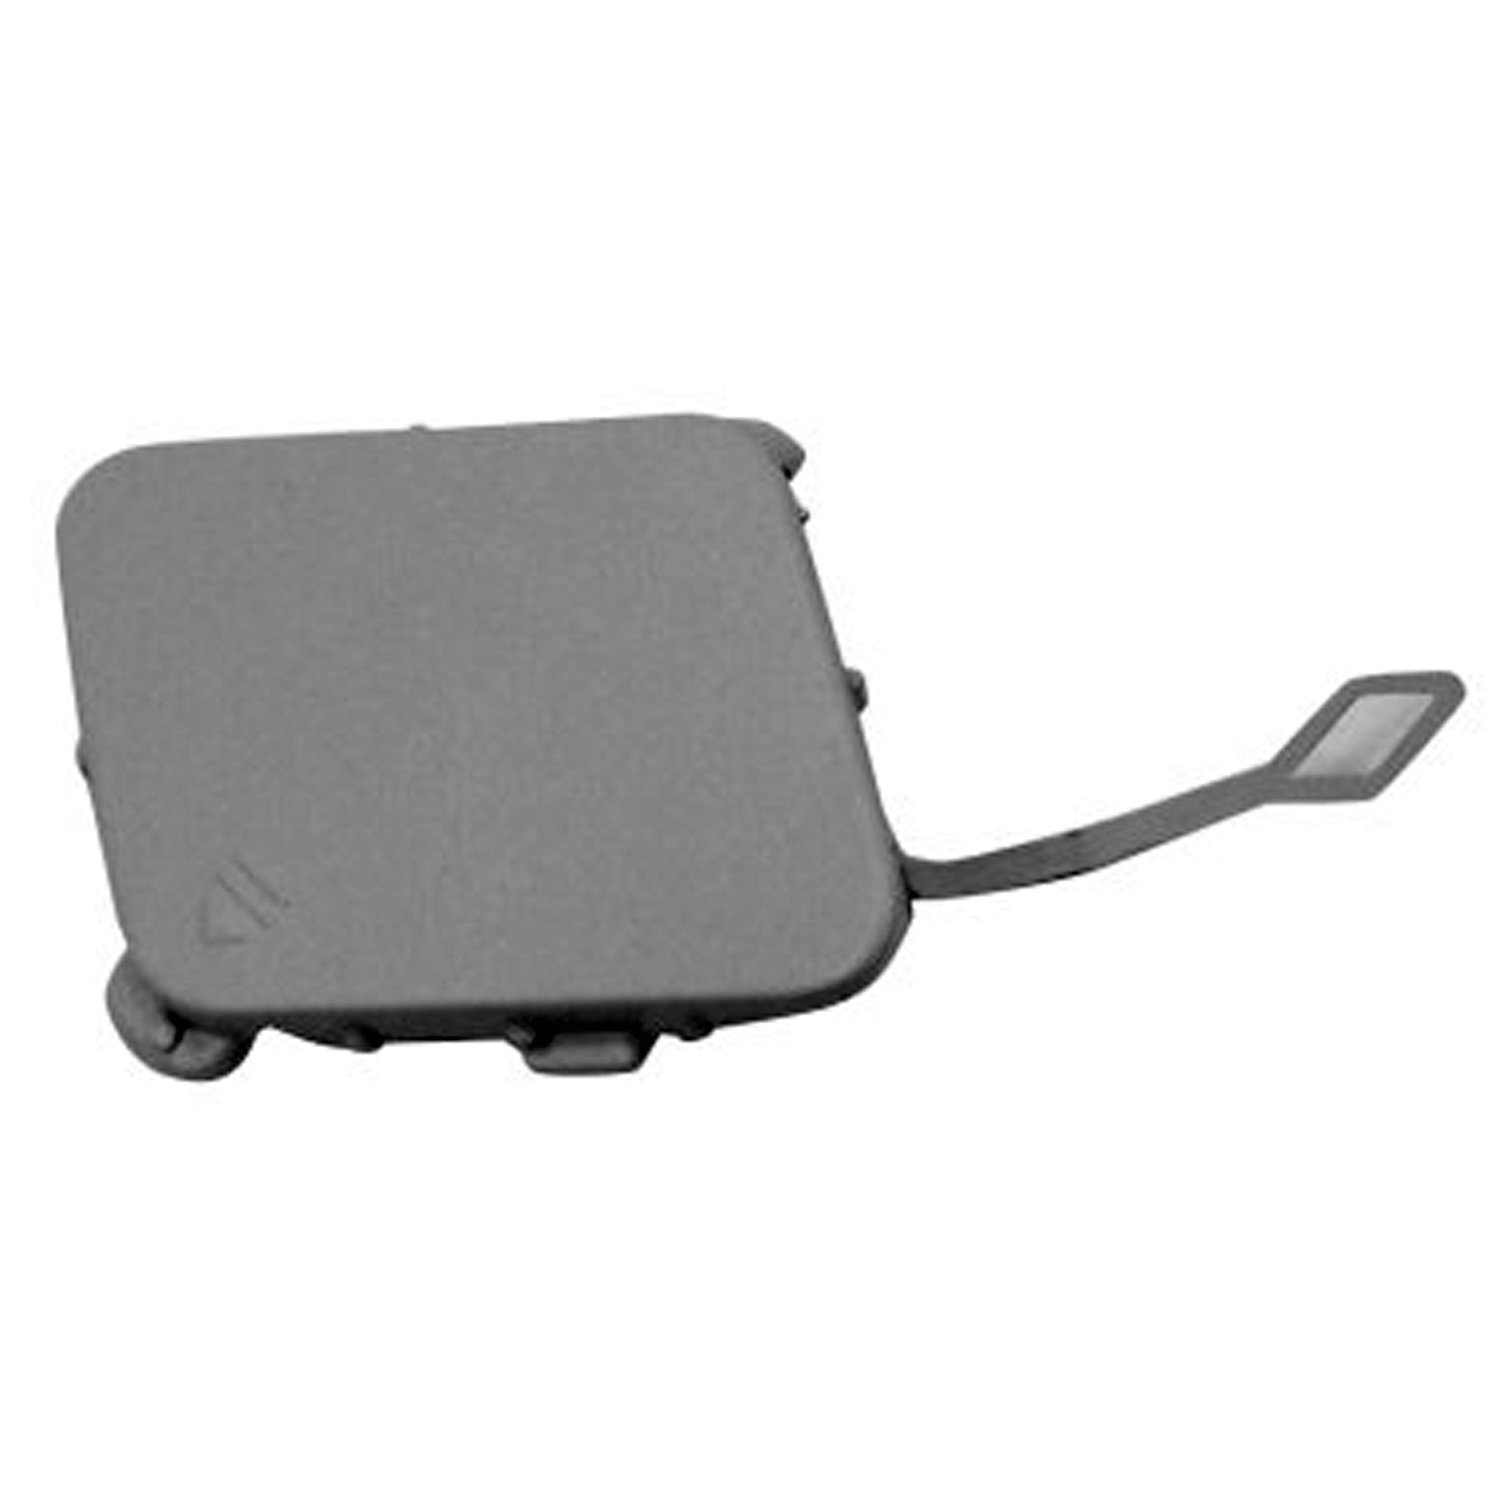 CPP CPP Front Tow Hook Cover for Mercedes-Benz S-Class